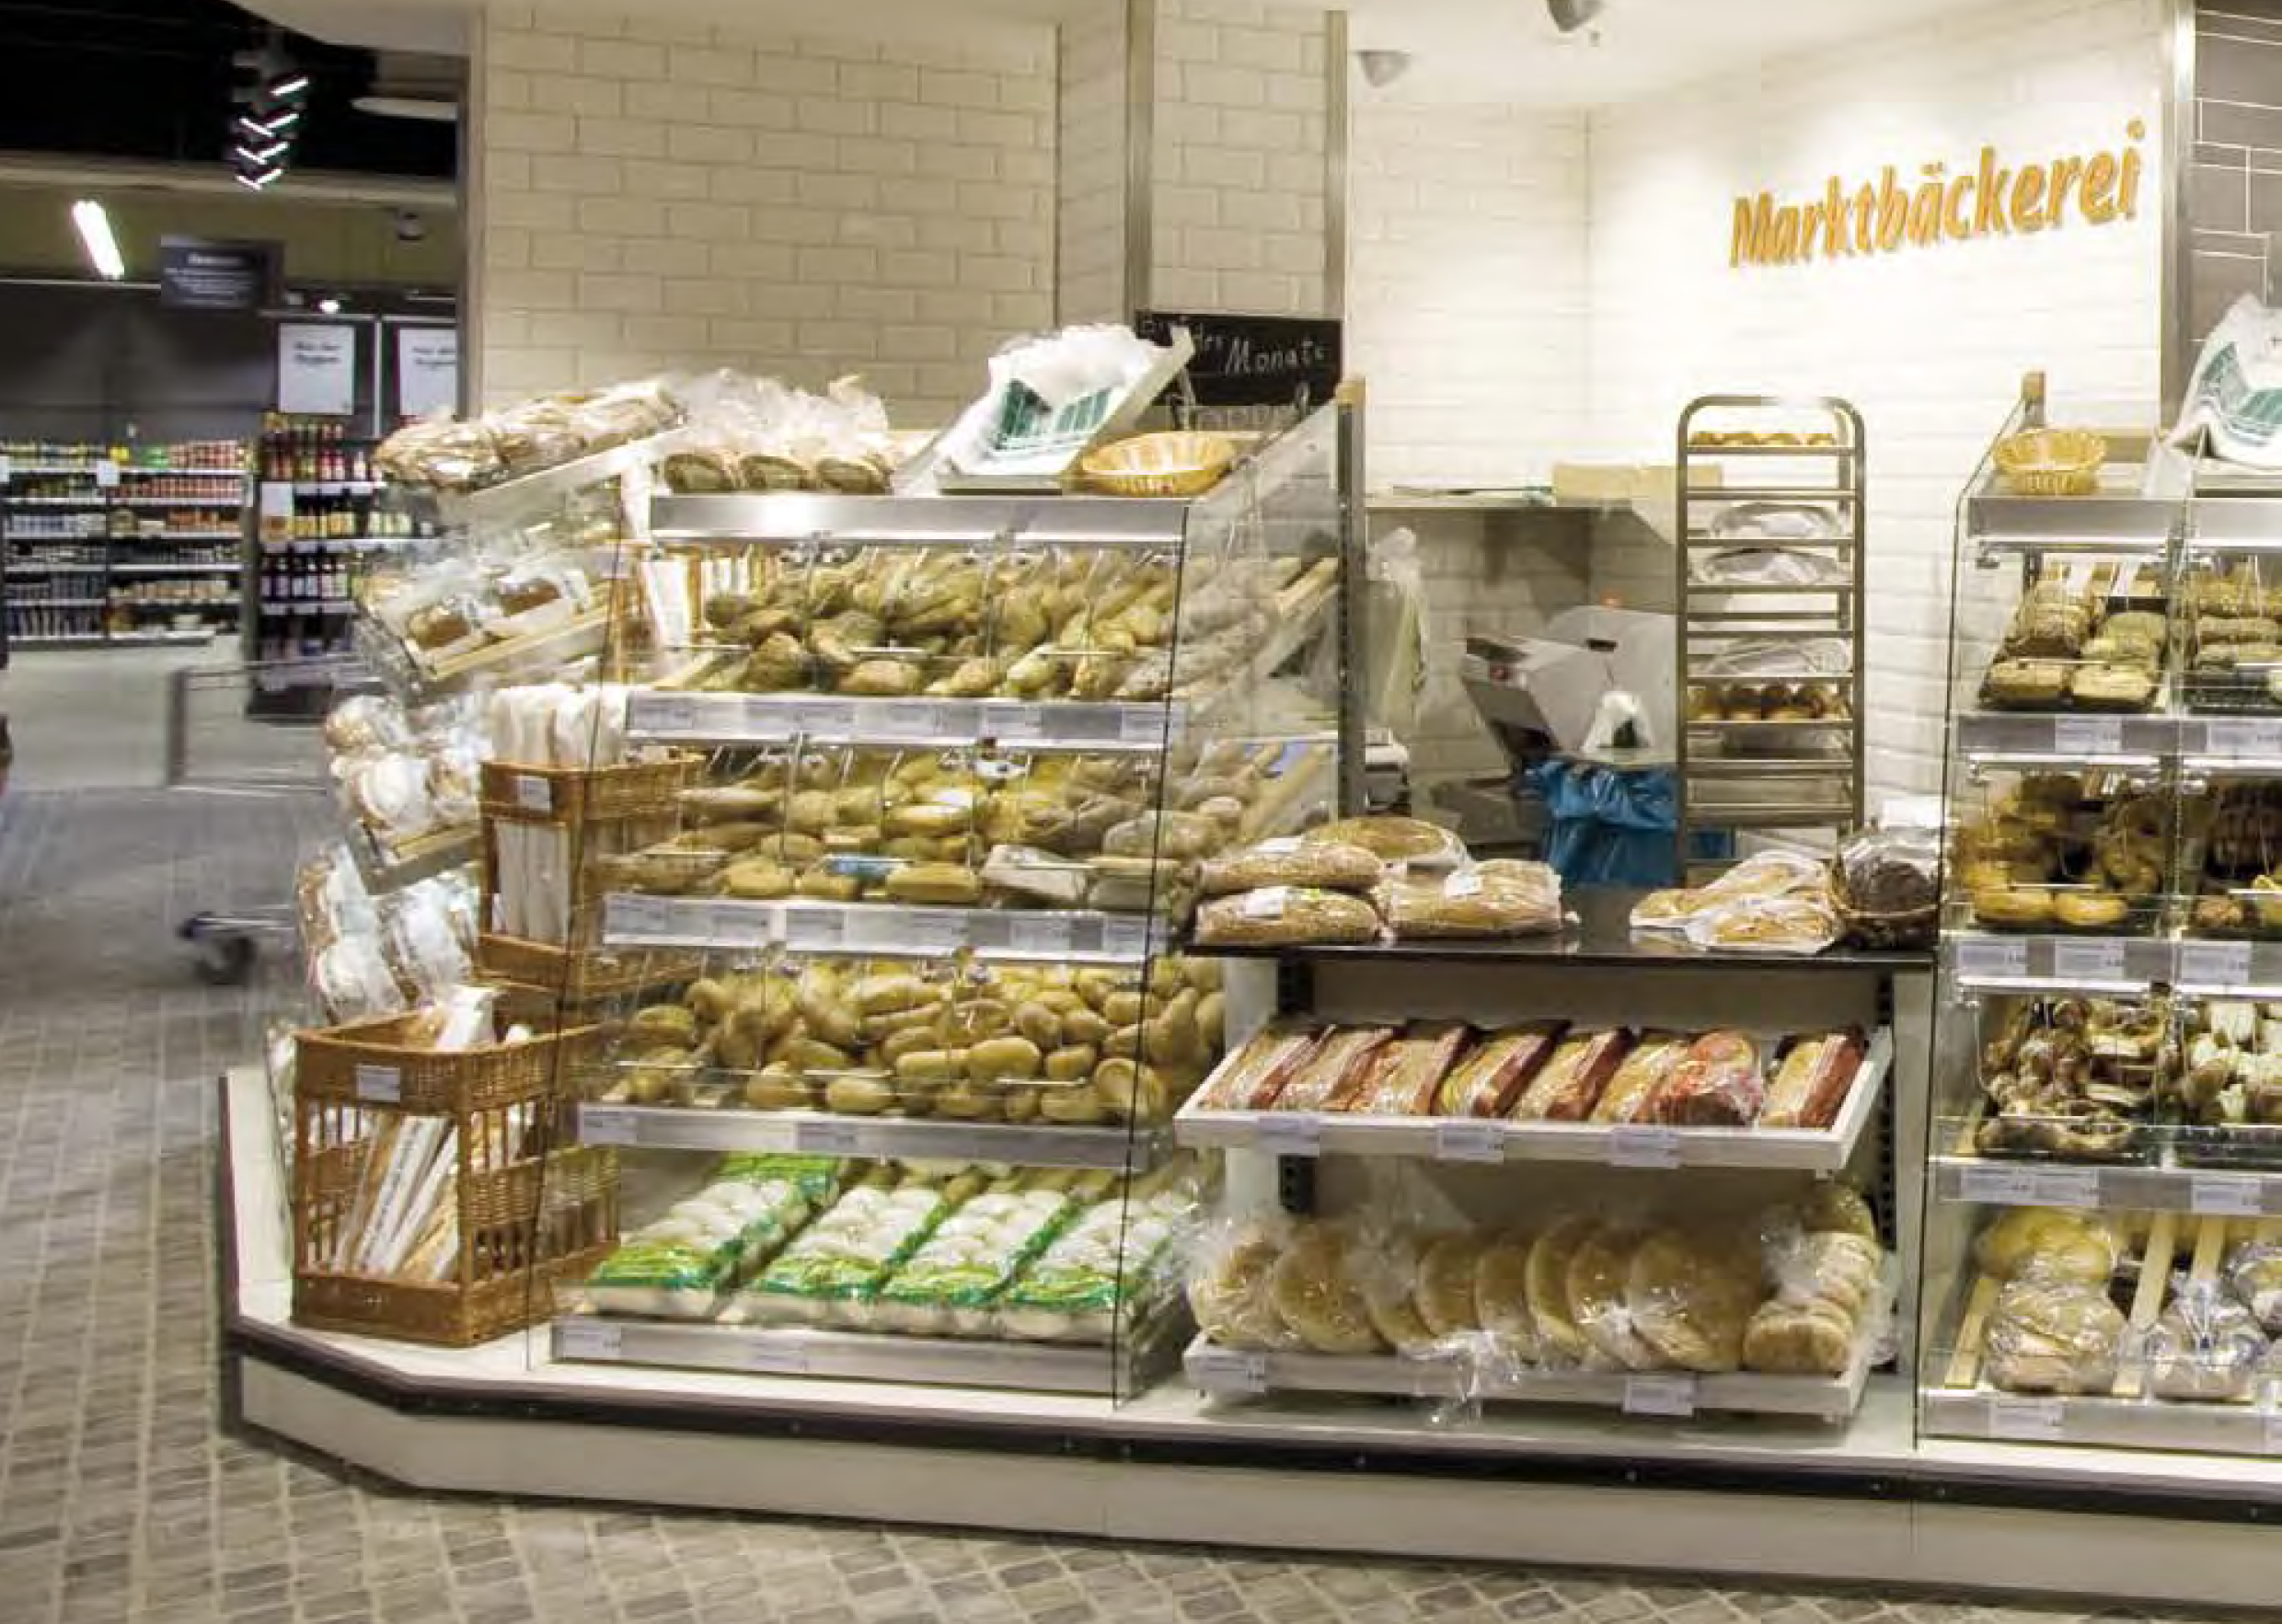 Shelves for Bakery products